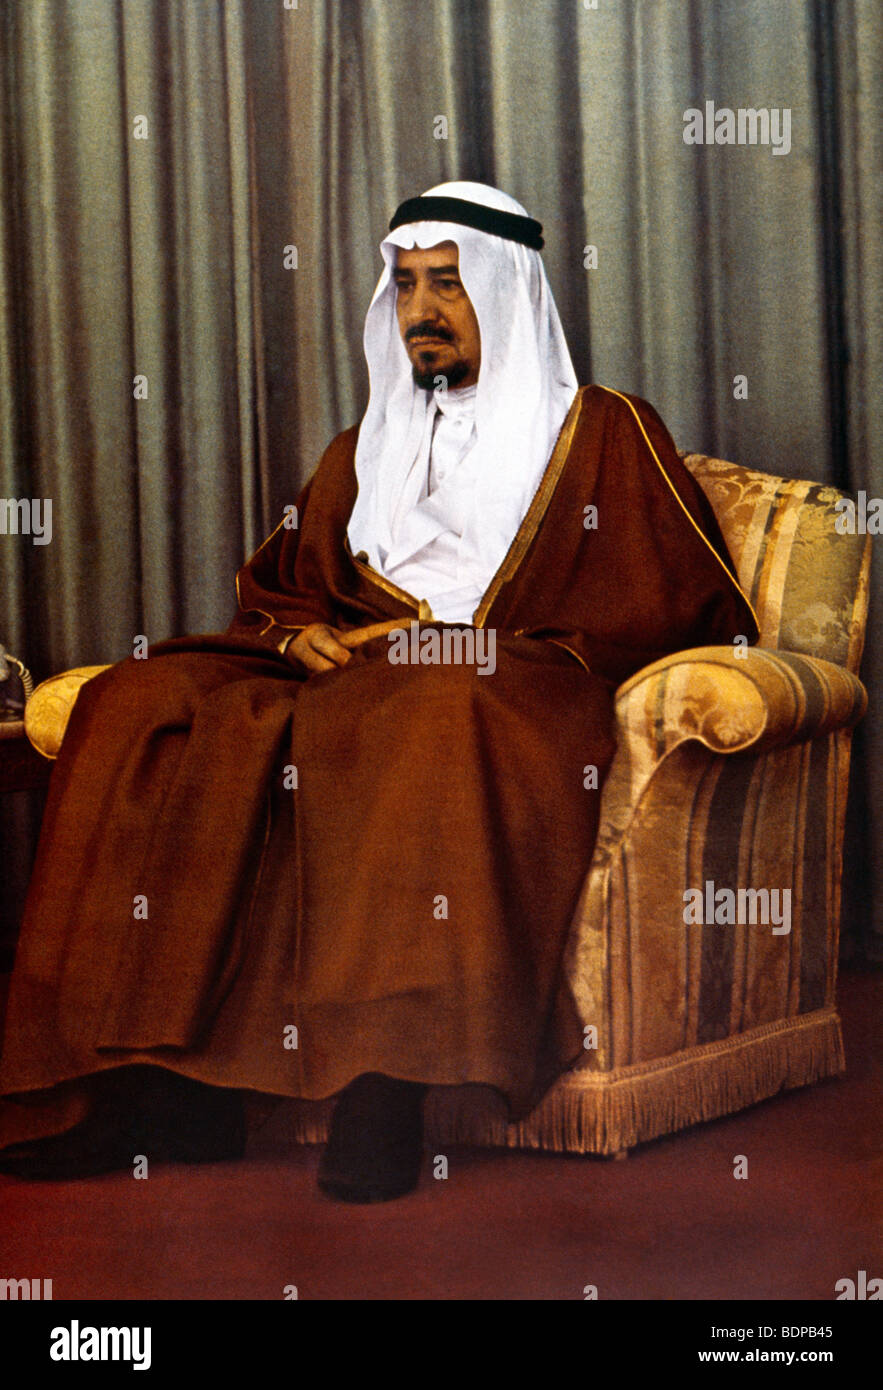 khaled stock photos khaled stock images alamy saudi arabia hrh king khaled bin abdul aziz stock image